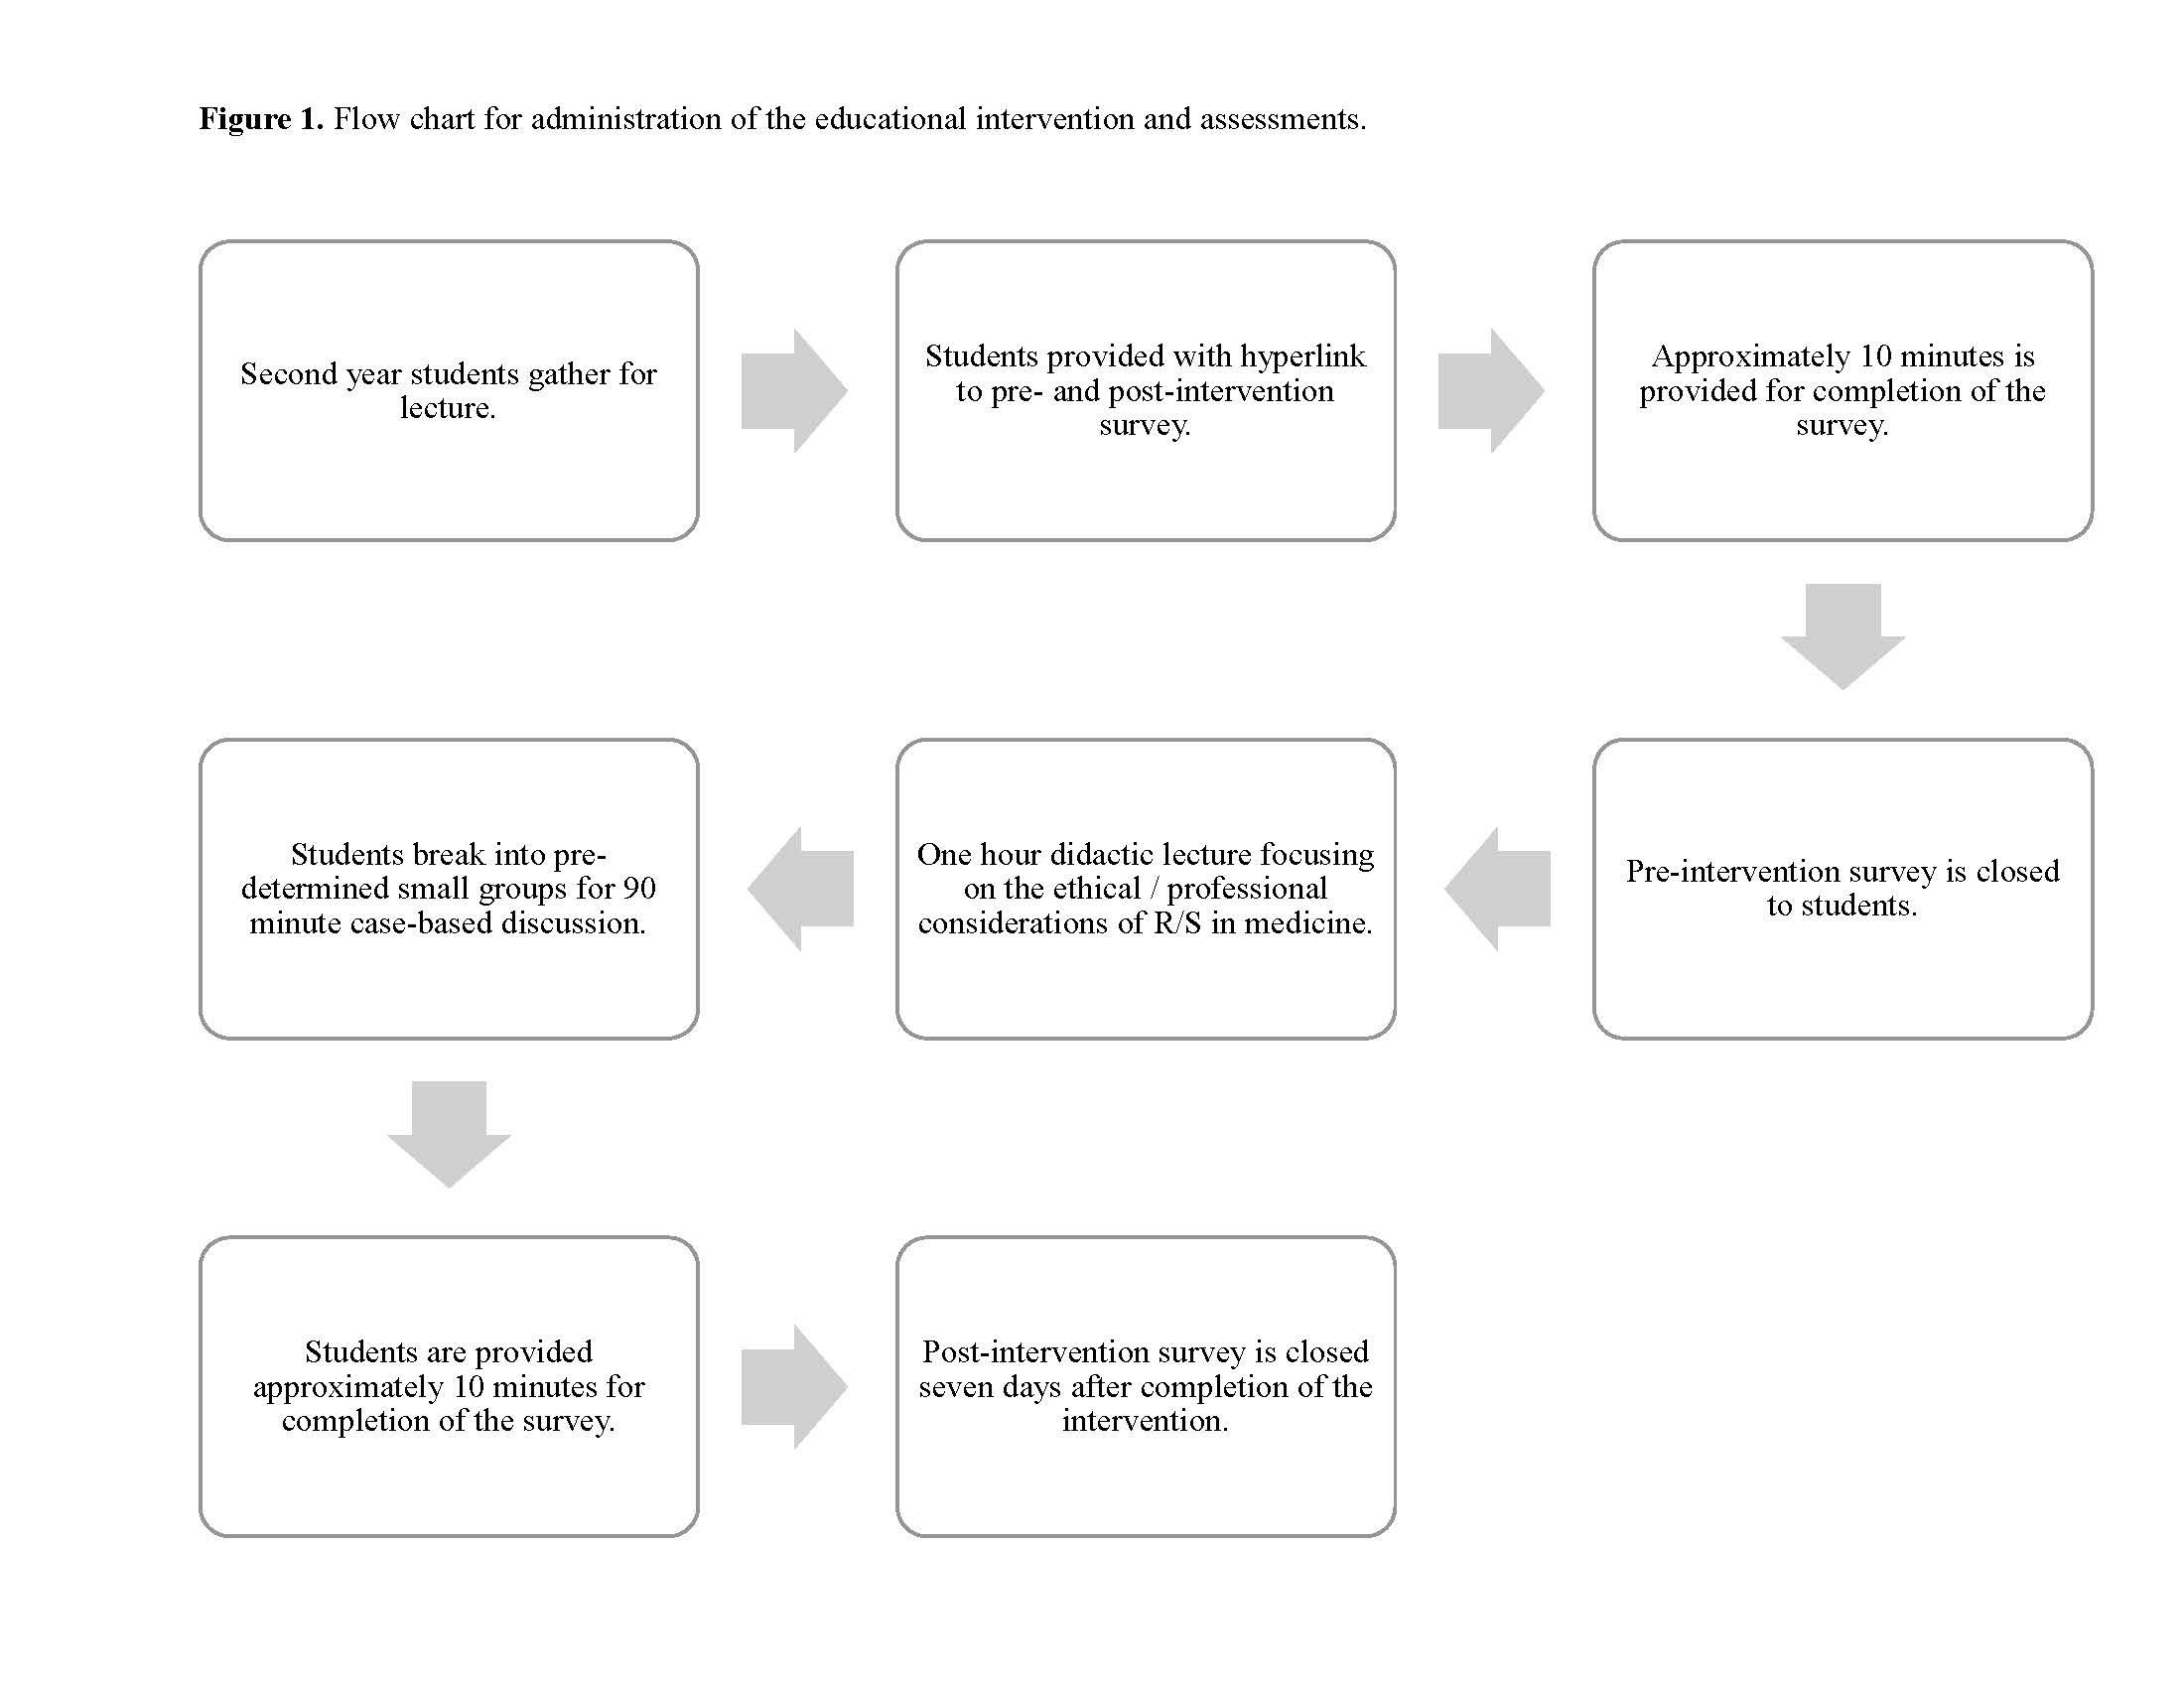 Efficacy of an educational intervention on students' attitudes